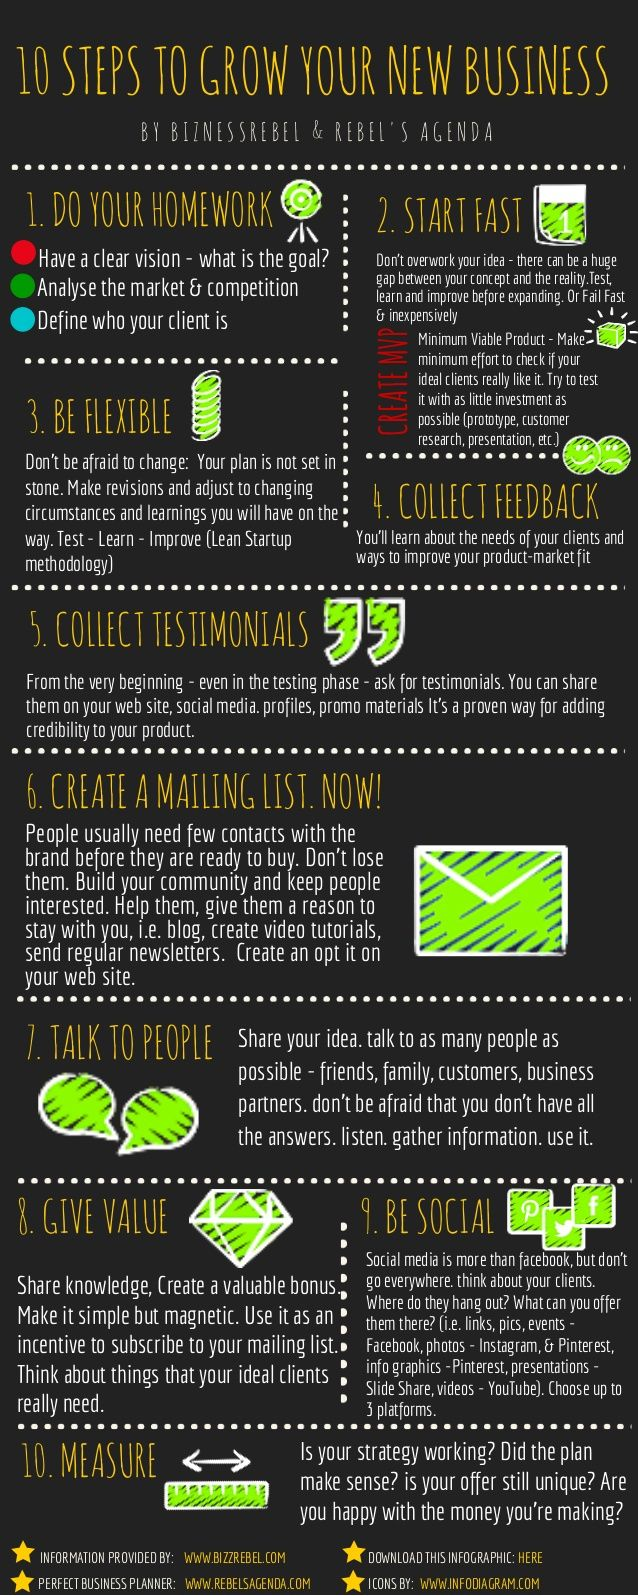 10 steps to grow your bizness Infographic by Rebel's Agenda